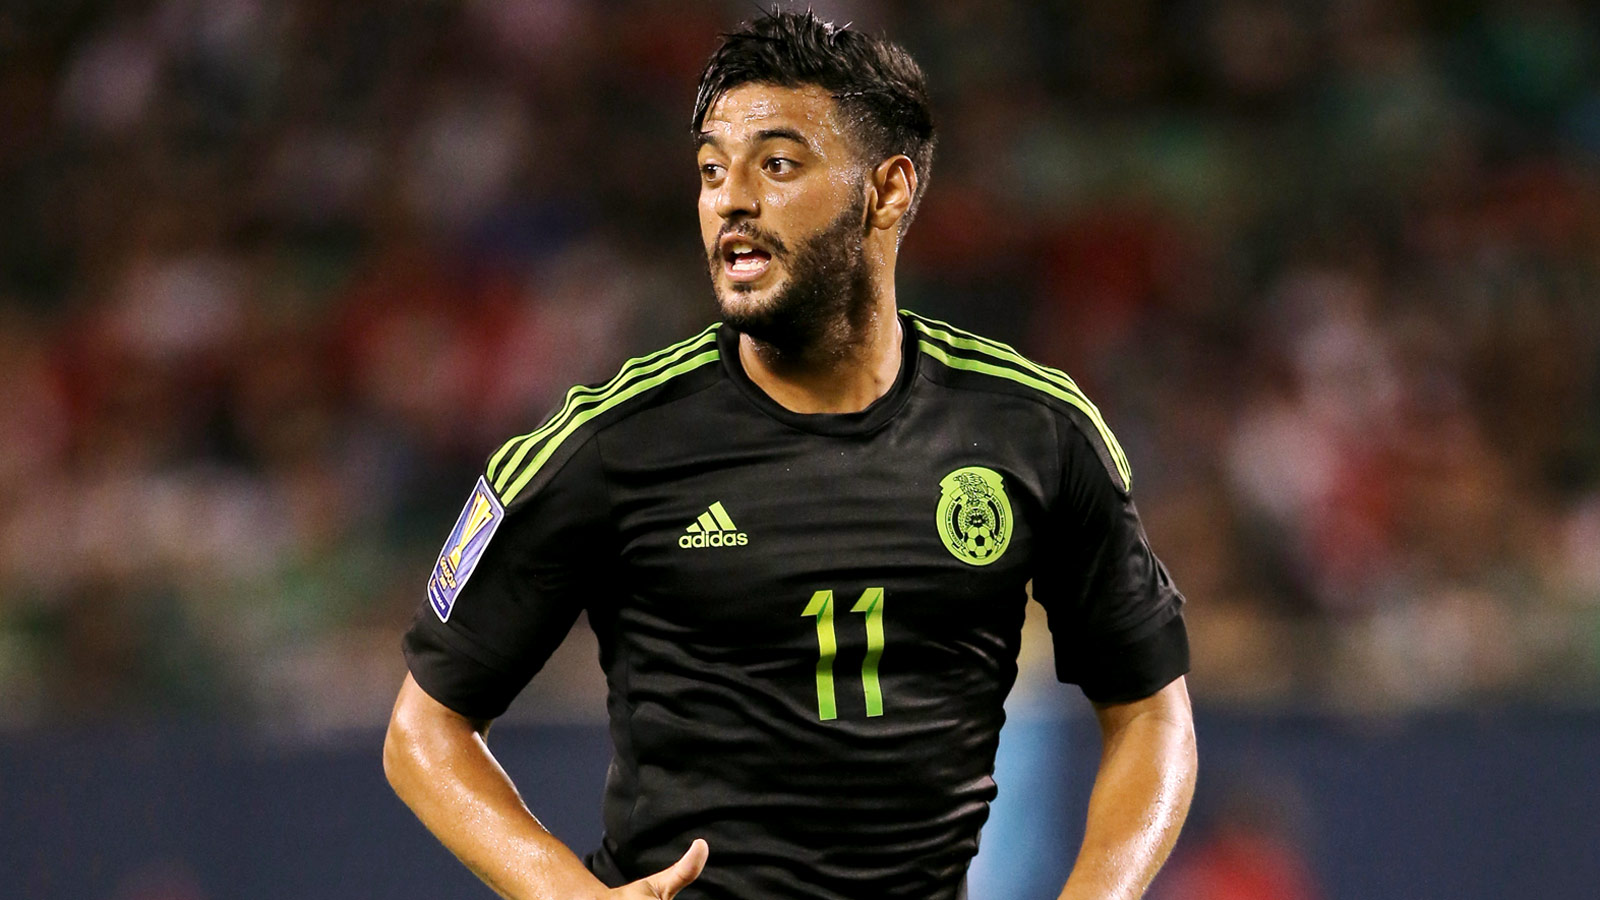 Mexico kick off USA playoff preparations against Trinidad & Tobago